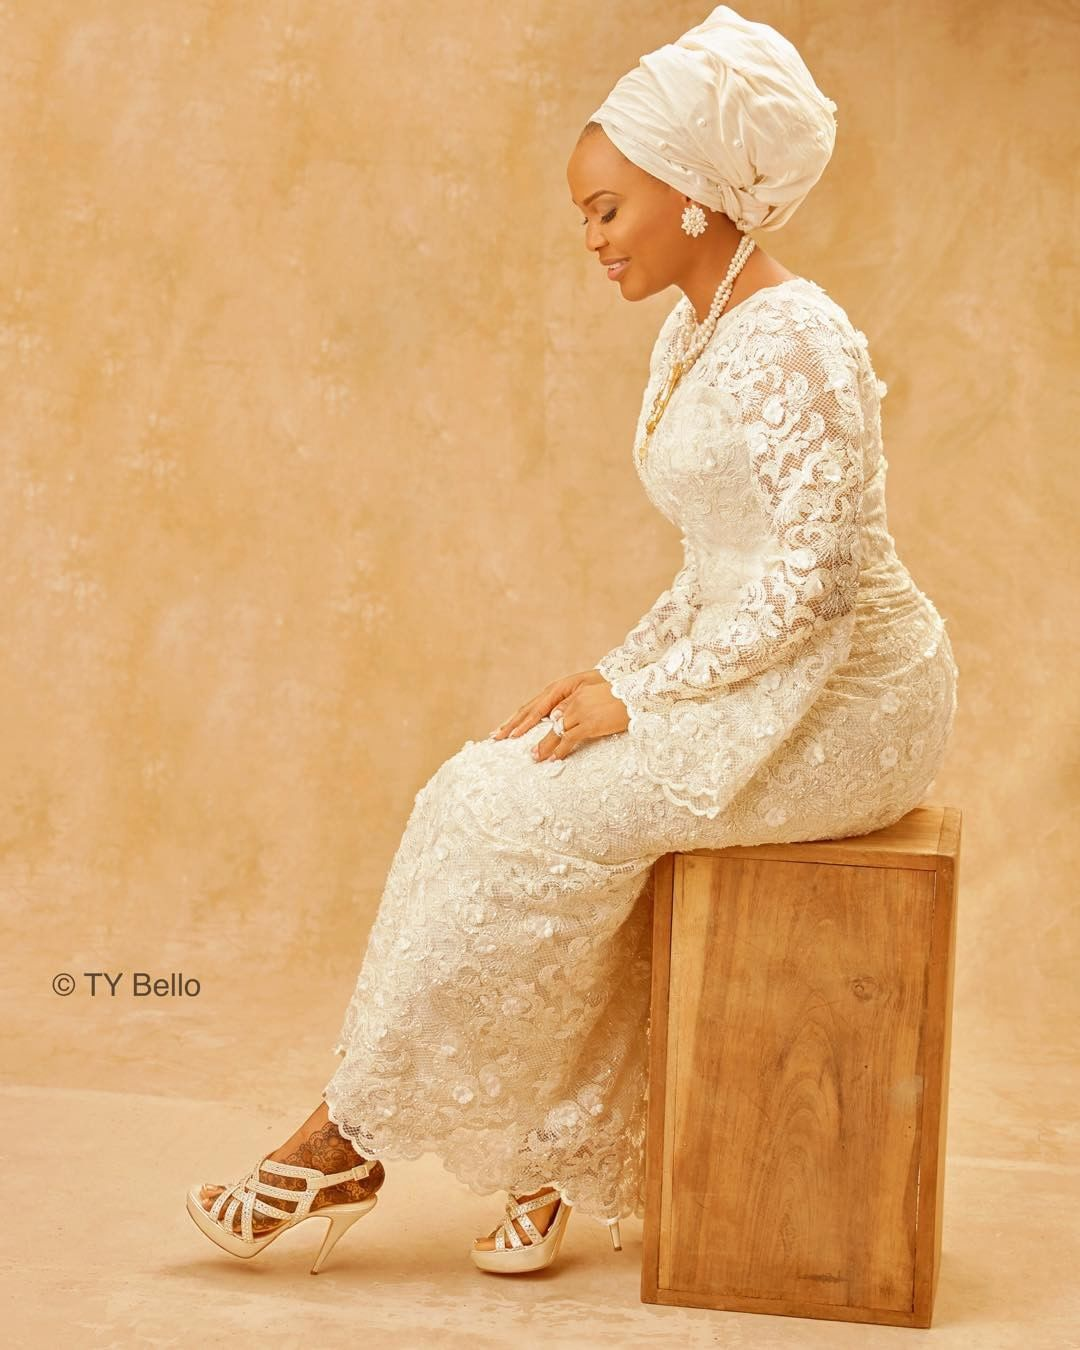 ty bello ameenat badmus - Fabulous 40th Birthday Portraits By TY Bello